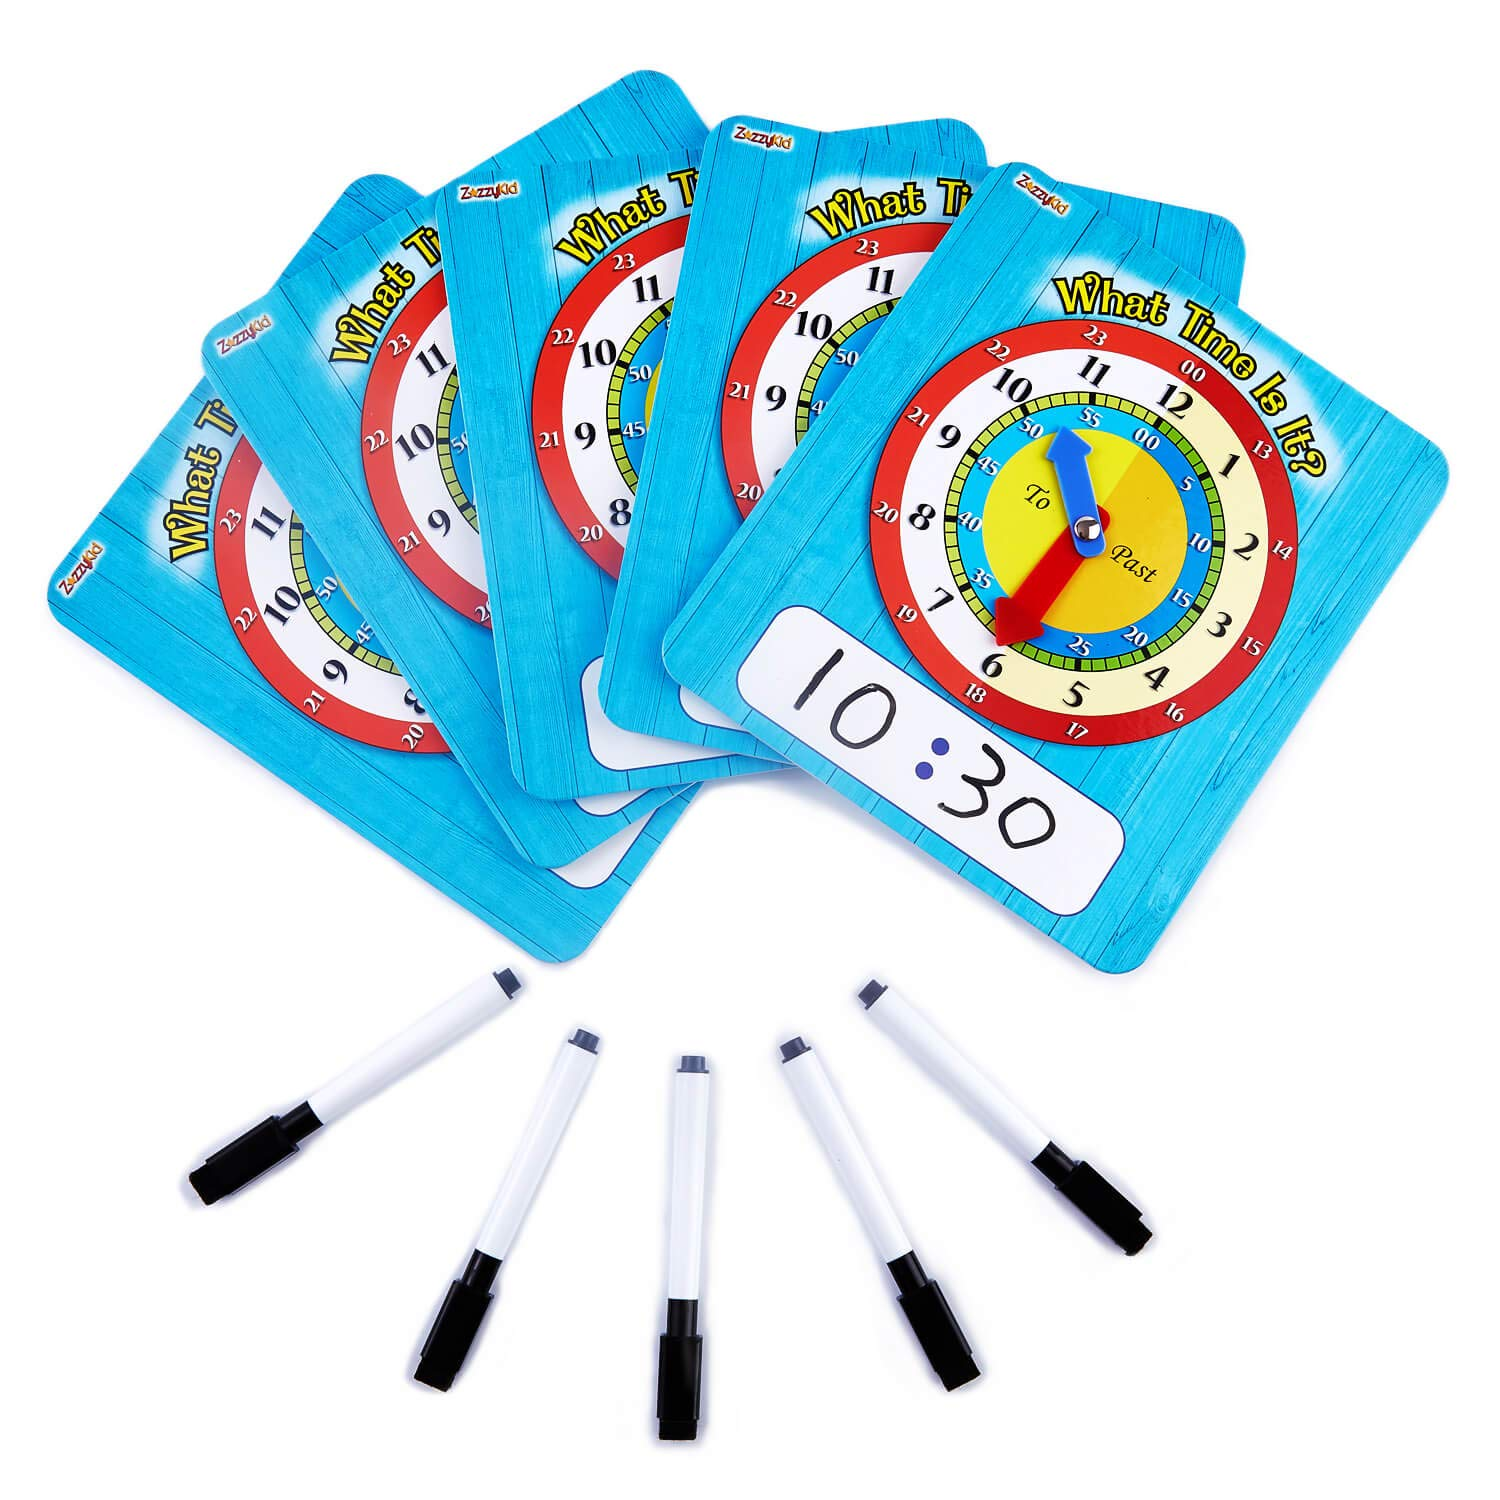 ZazzyKid Time Learning Clock for Kids: 5 Clocks (7 x 8 Inches) + 5 Erasable Markers – Teach Children to Tell Time